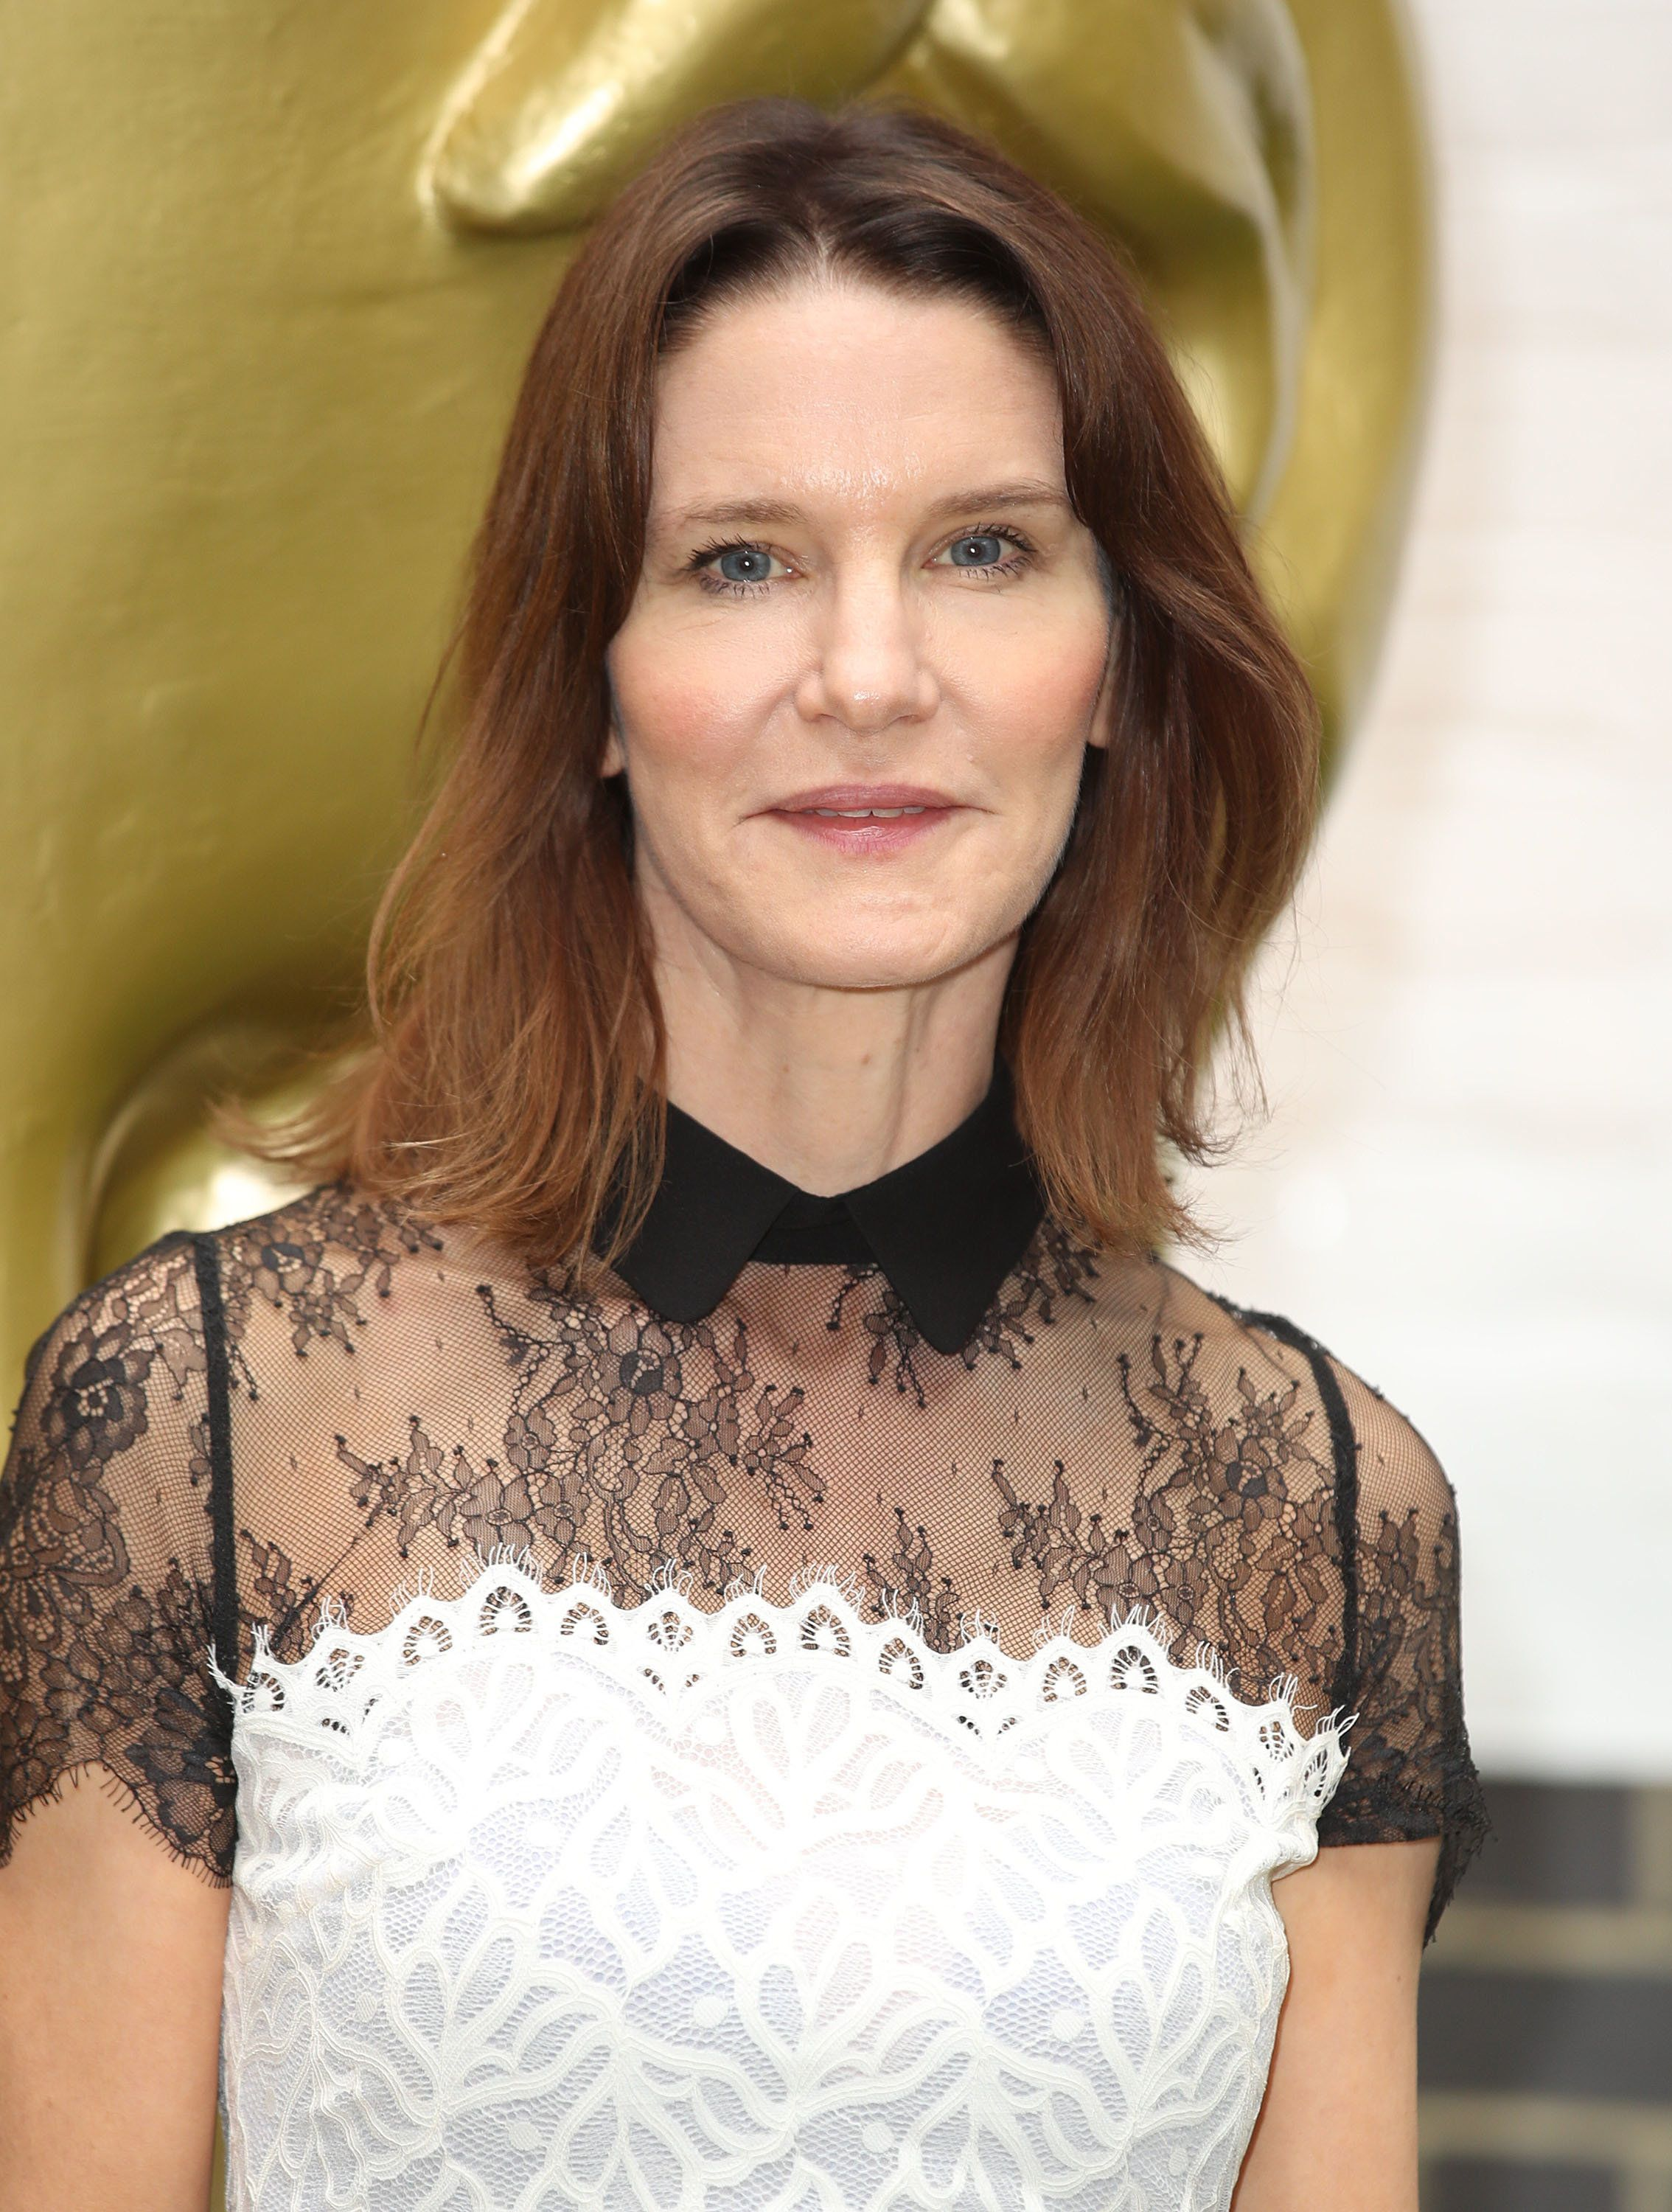 'Countdown' Star Susie Dent Shares Details Of Unsettling Fan Letter Written In